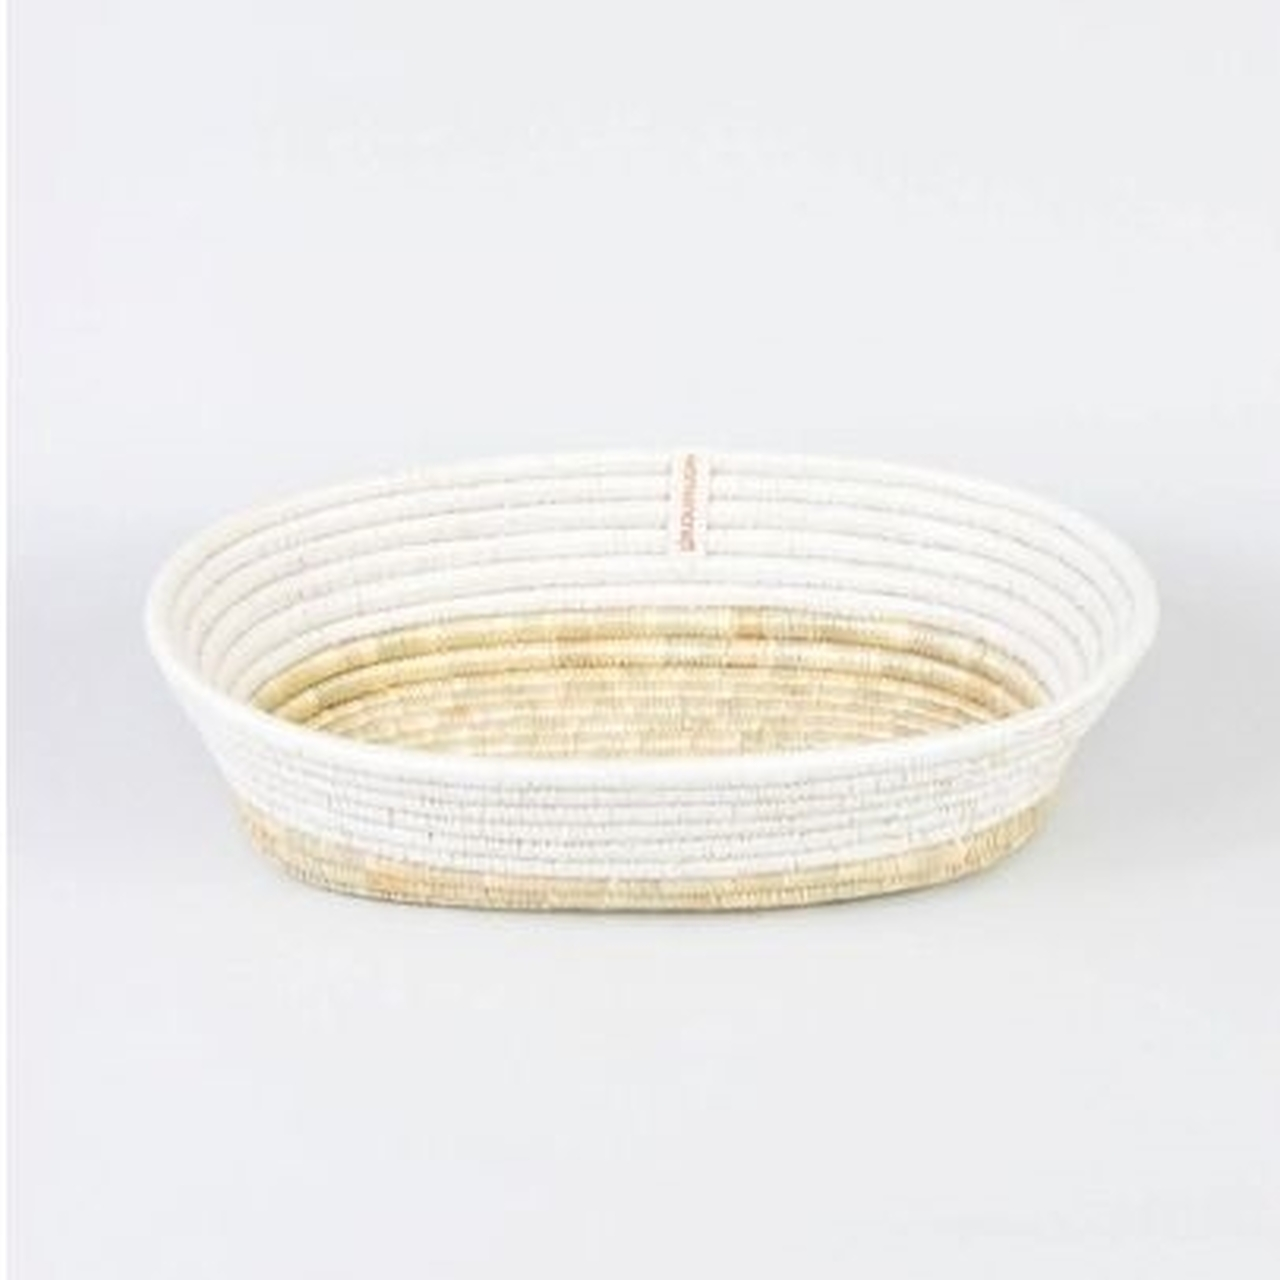 Upcycled Woven Bowl